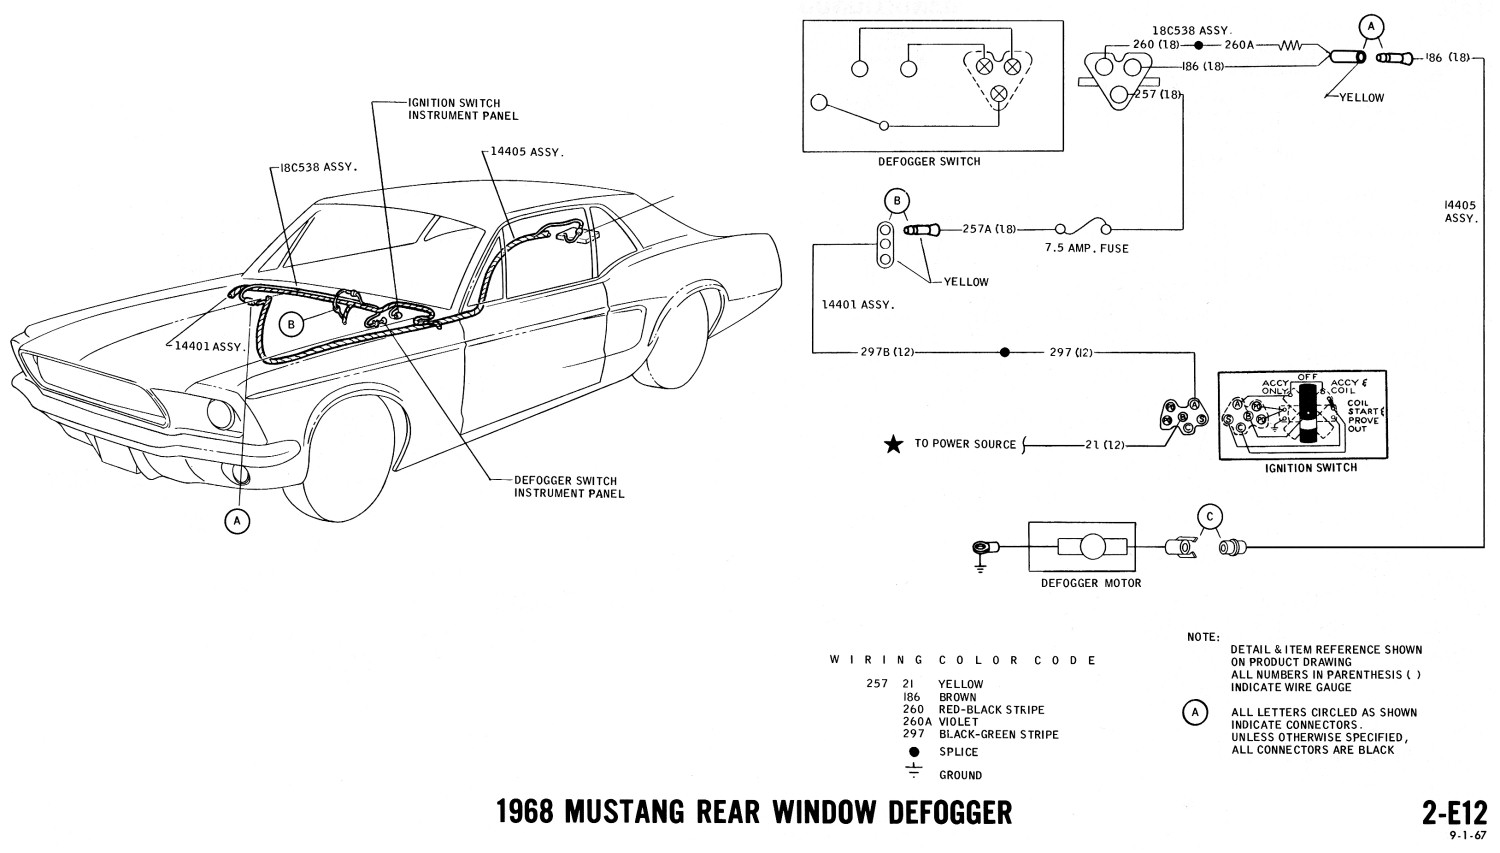 Mustang Wiring Diagram Rear Window Defrost on wiring diagram ford mustang 1967